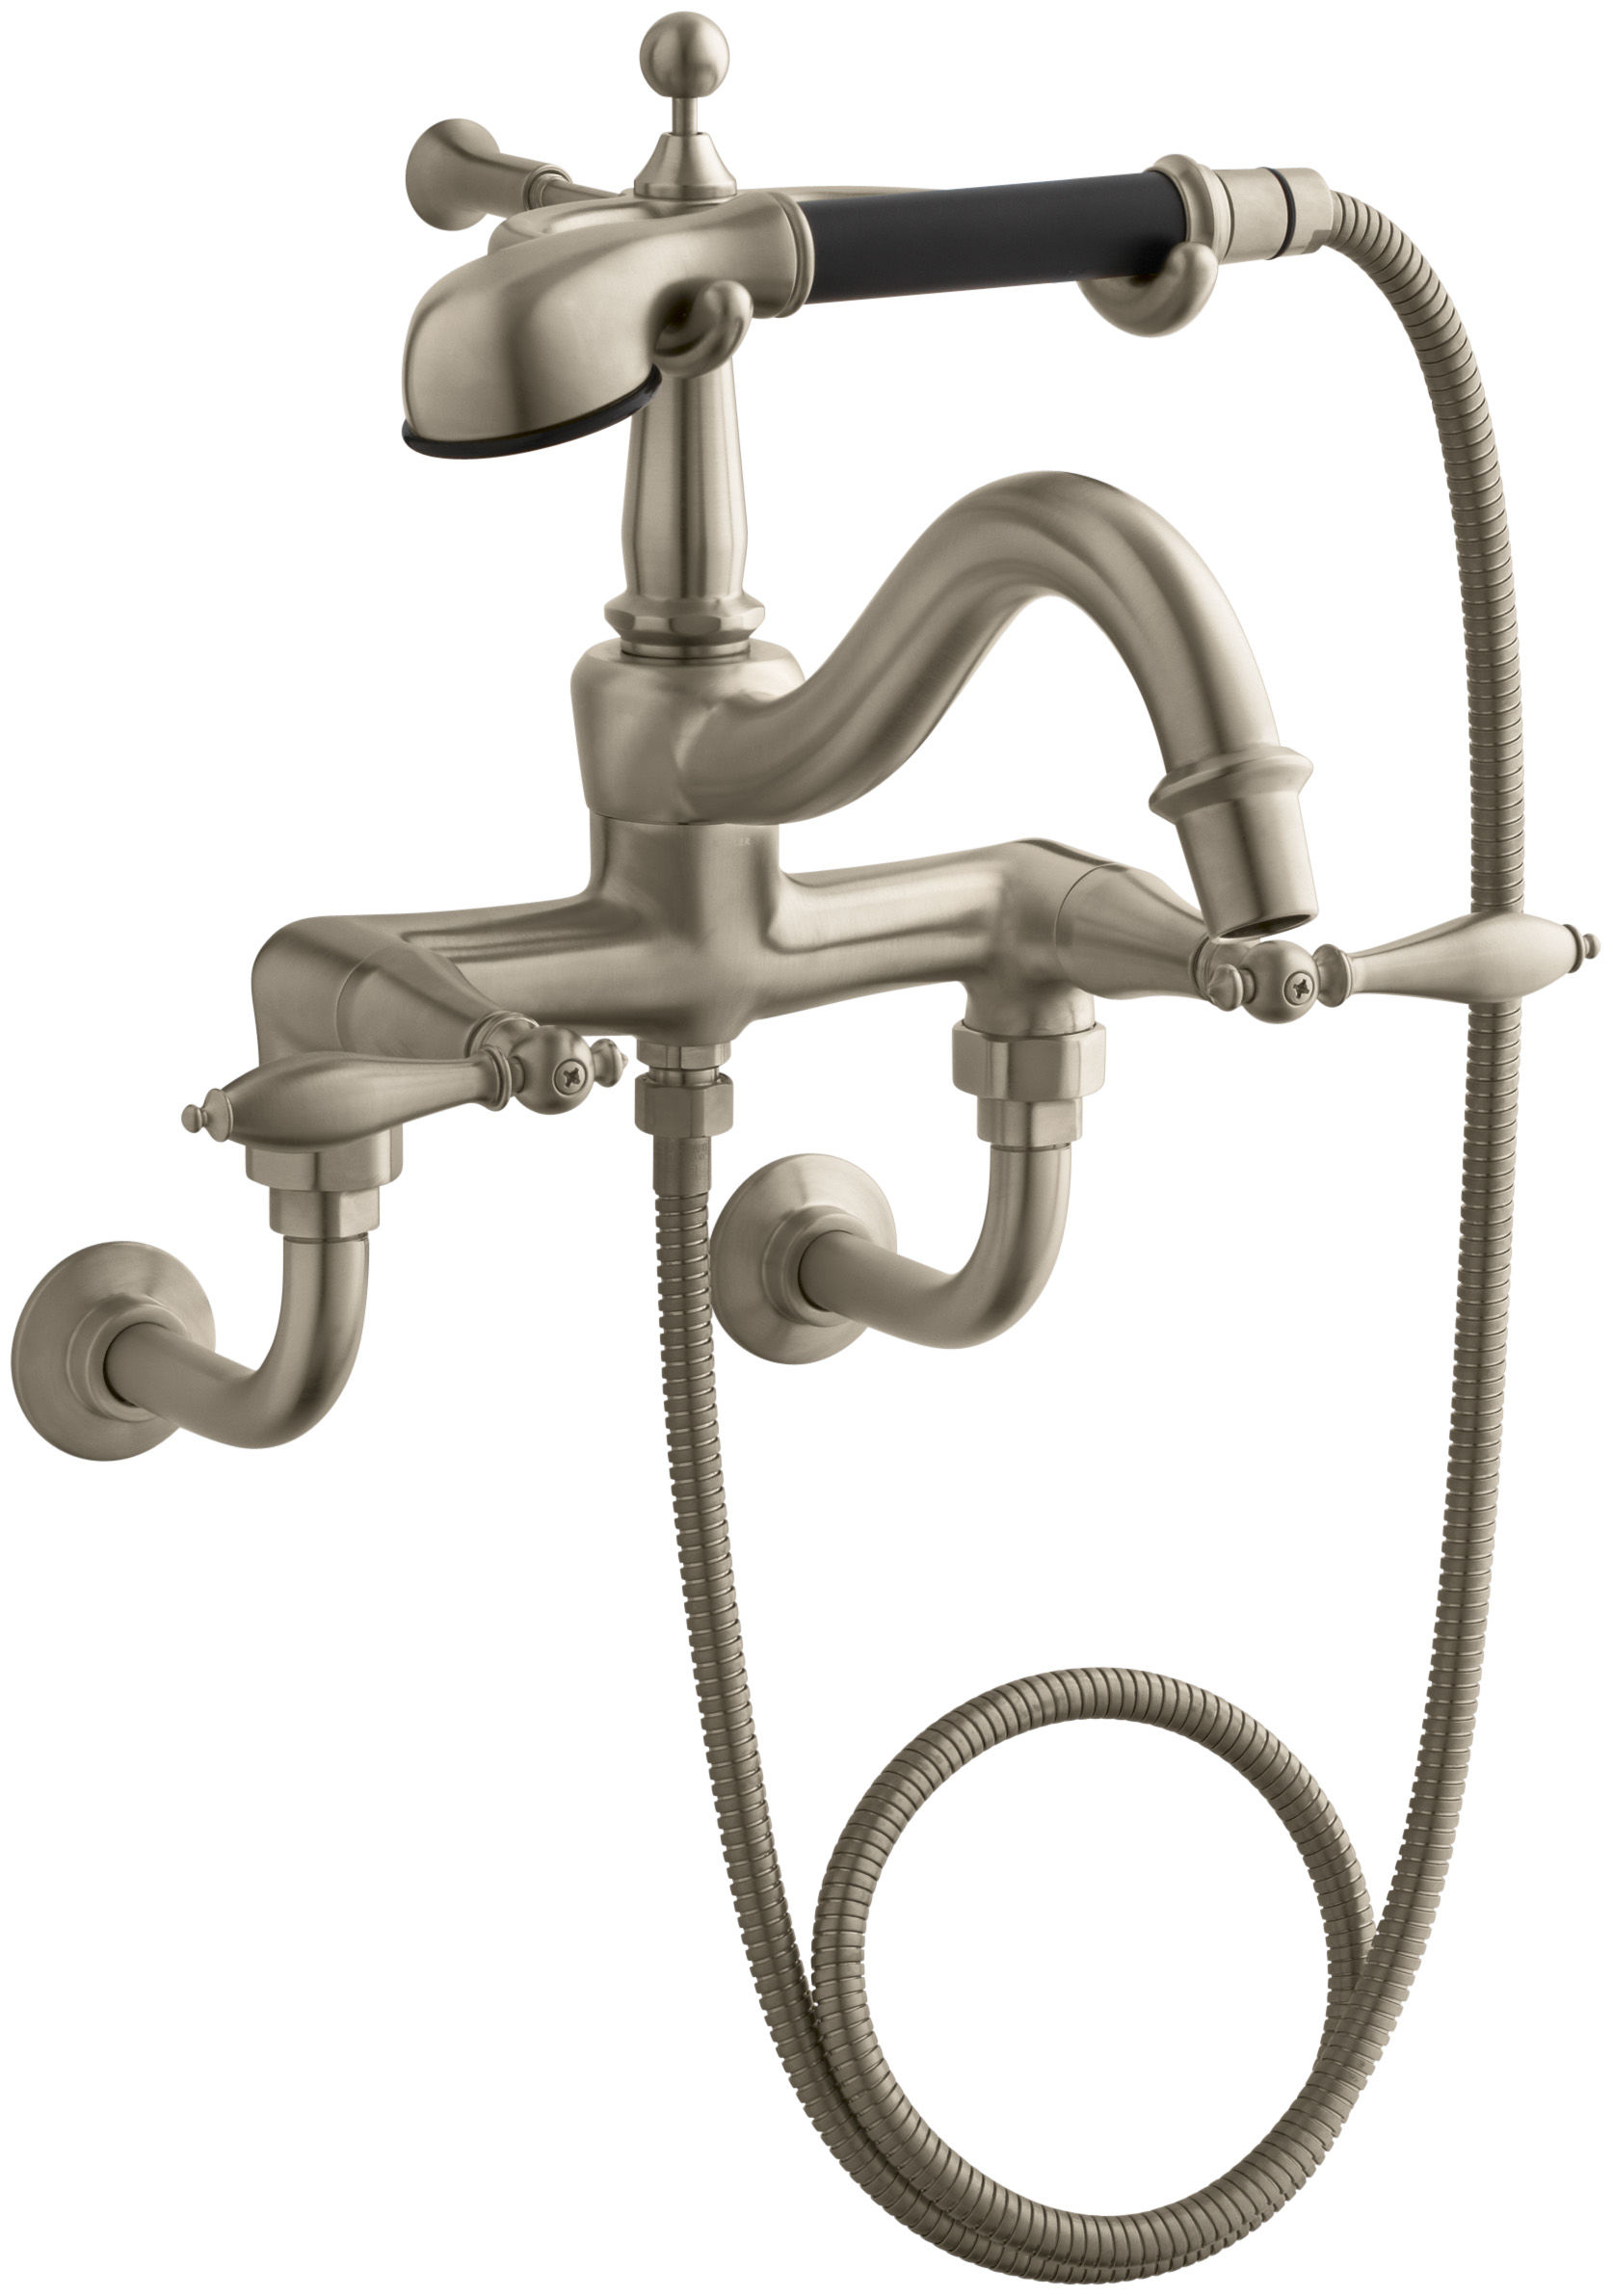 kohler roman tub faucet with hand shower. Kohler K 331 4M BV Brushed Bronze Double Handle Roman Tub Faucet with Metal  Lever Handles and Handshower from the Finial Traditional Series FaucetDirect